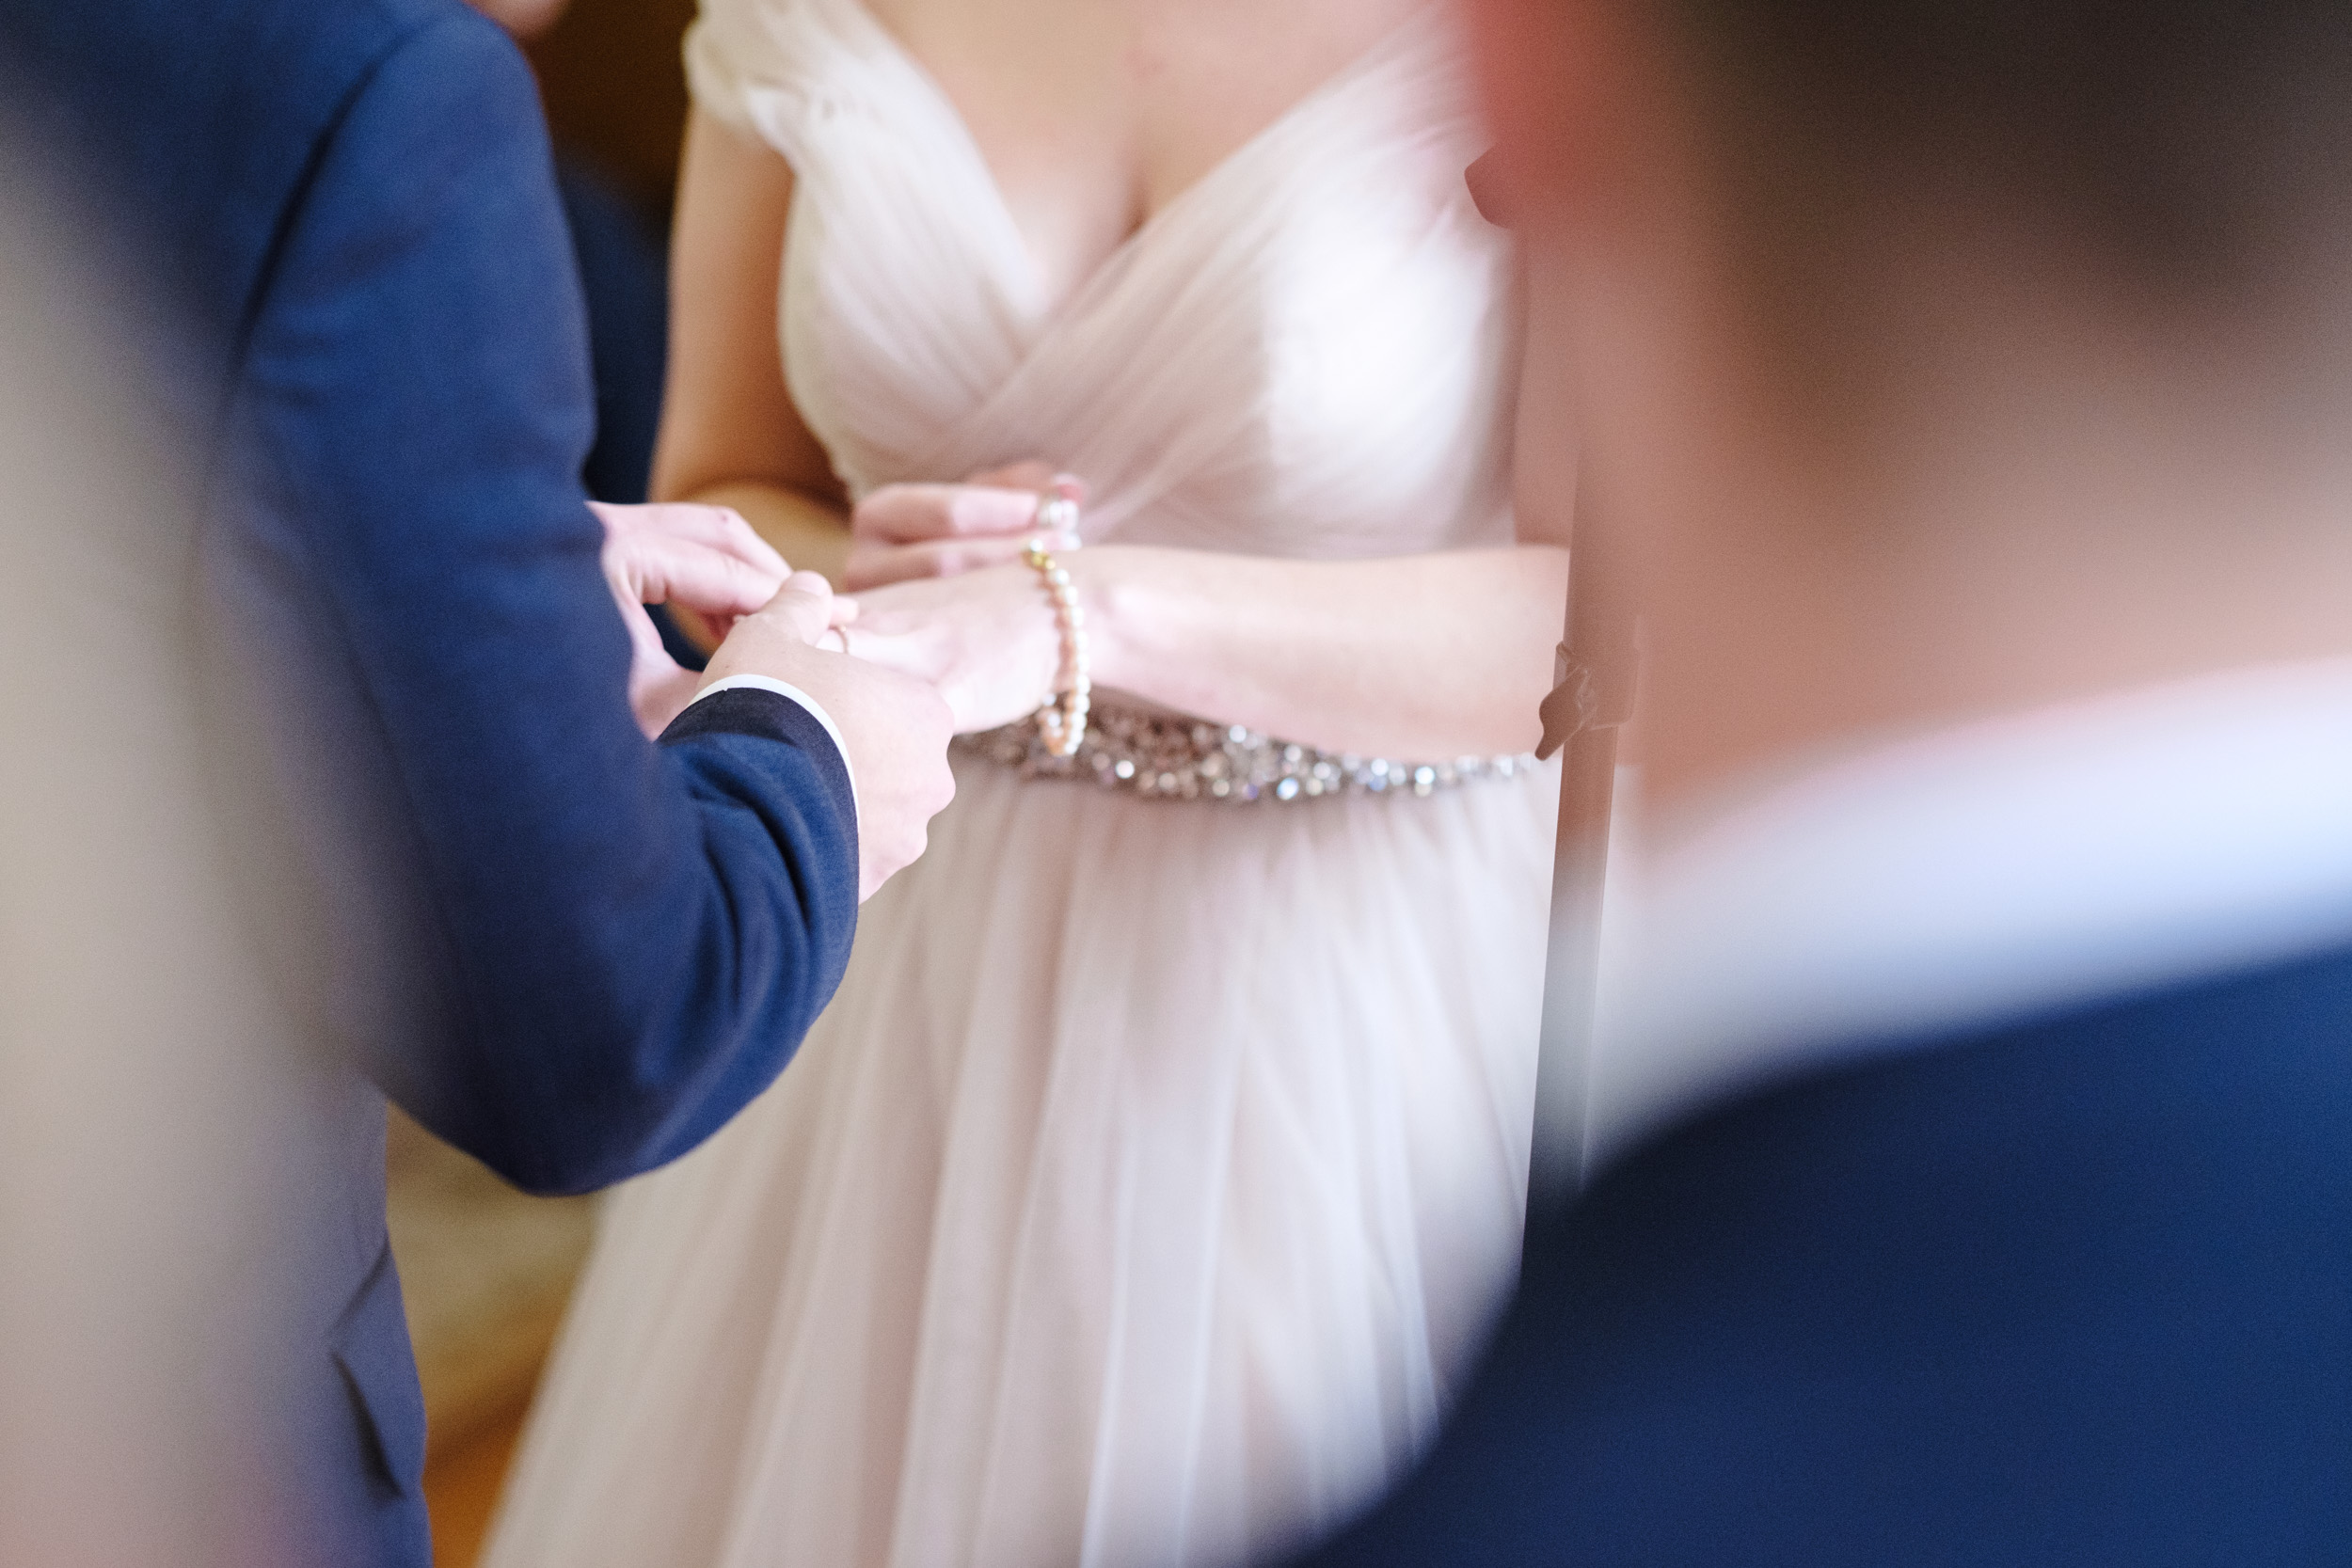 groom in blue suit slips rose gold wedding band onto brides hand